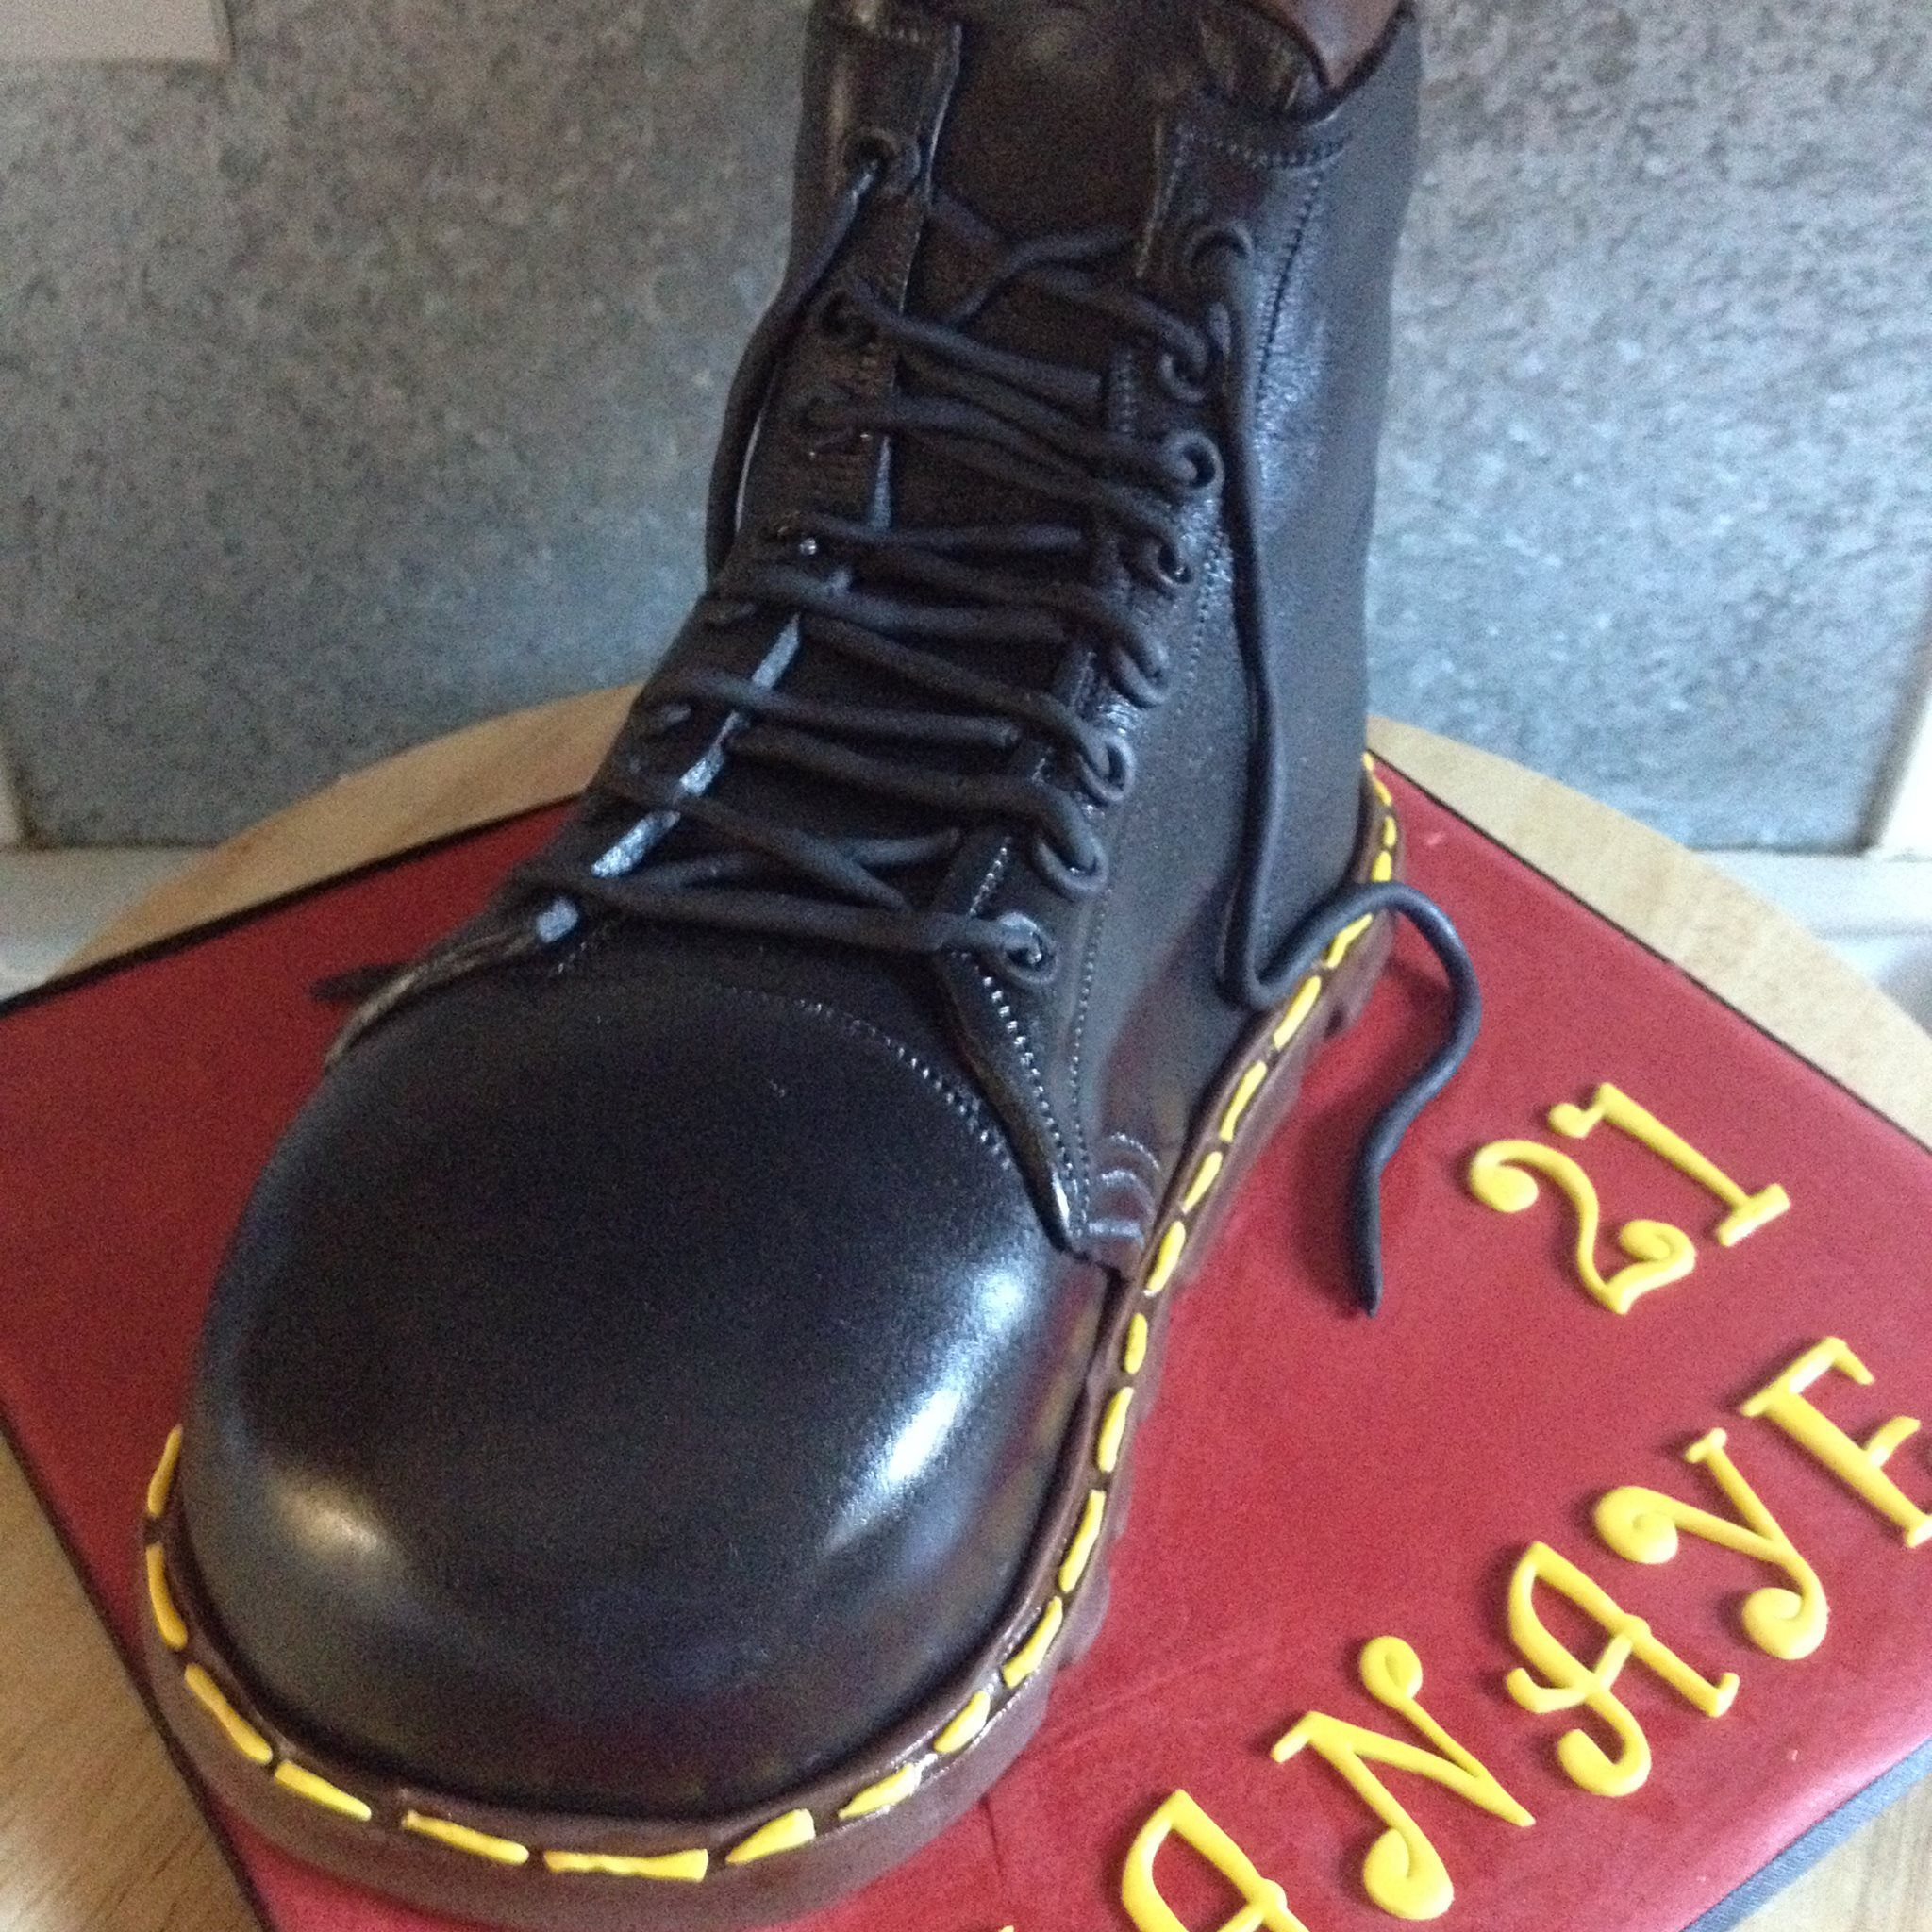 Doc Martin boot cake | Doc martins boots, Boots, Dr martin boots